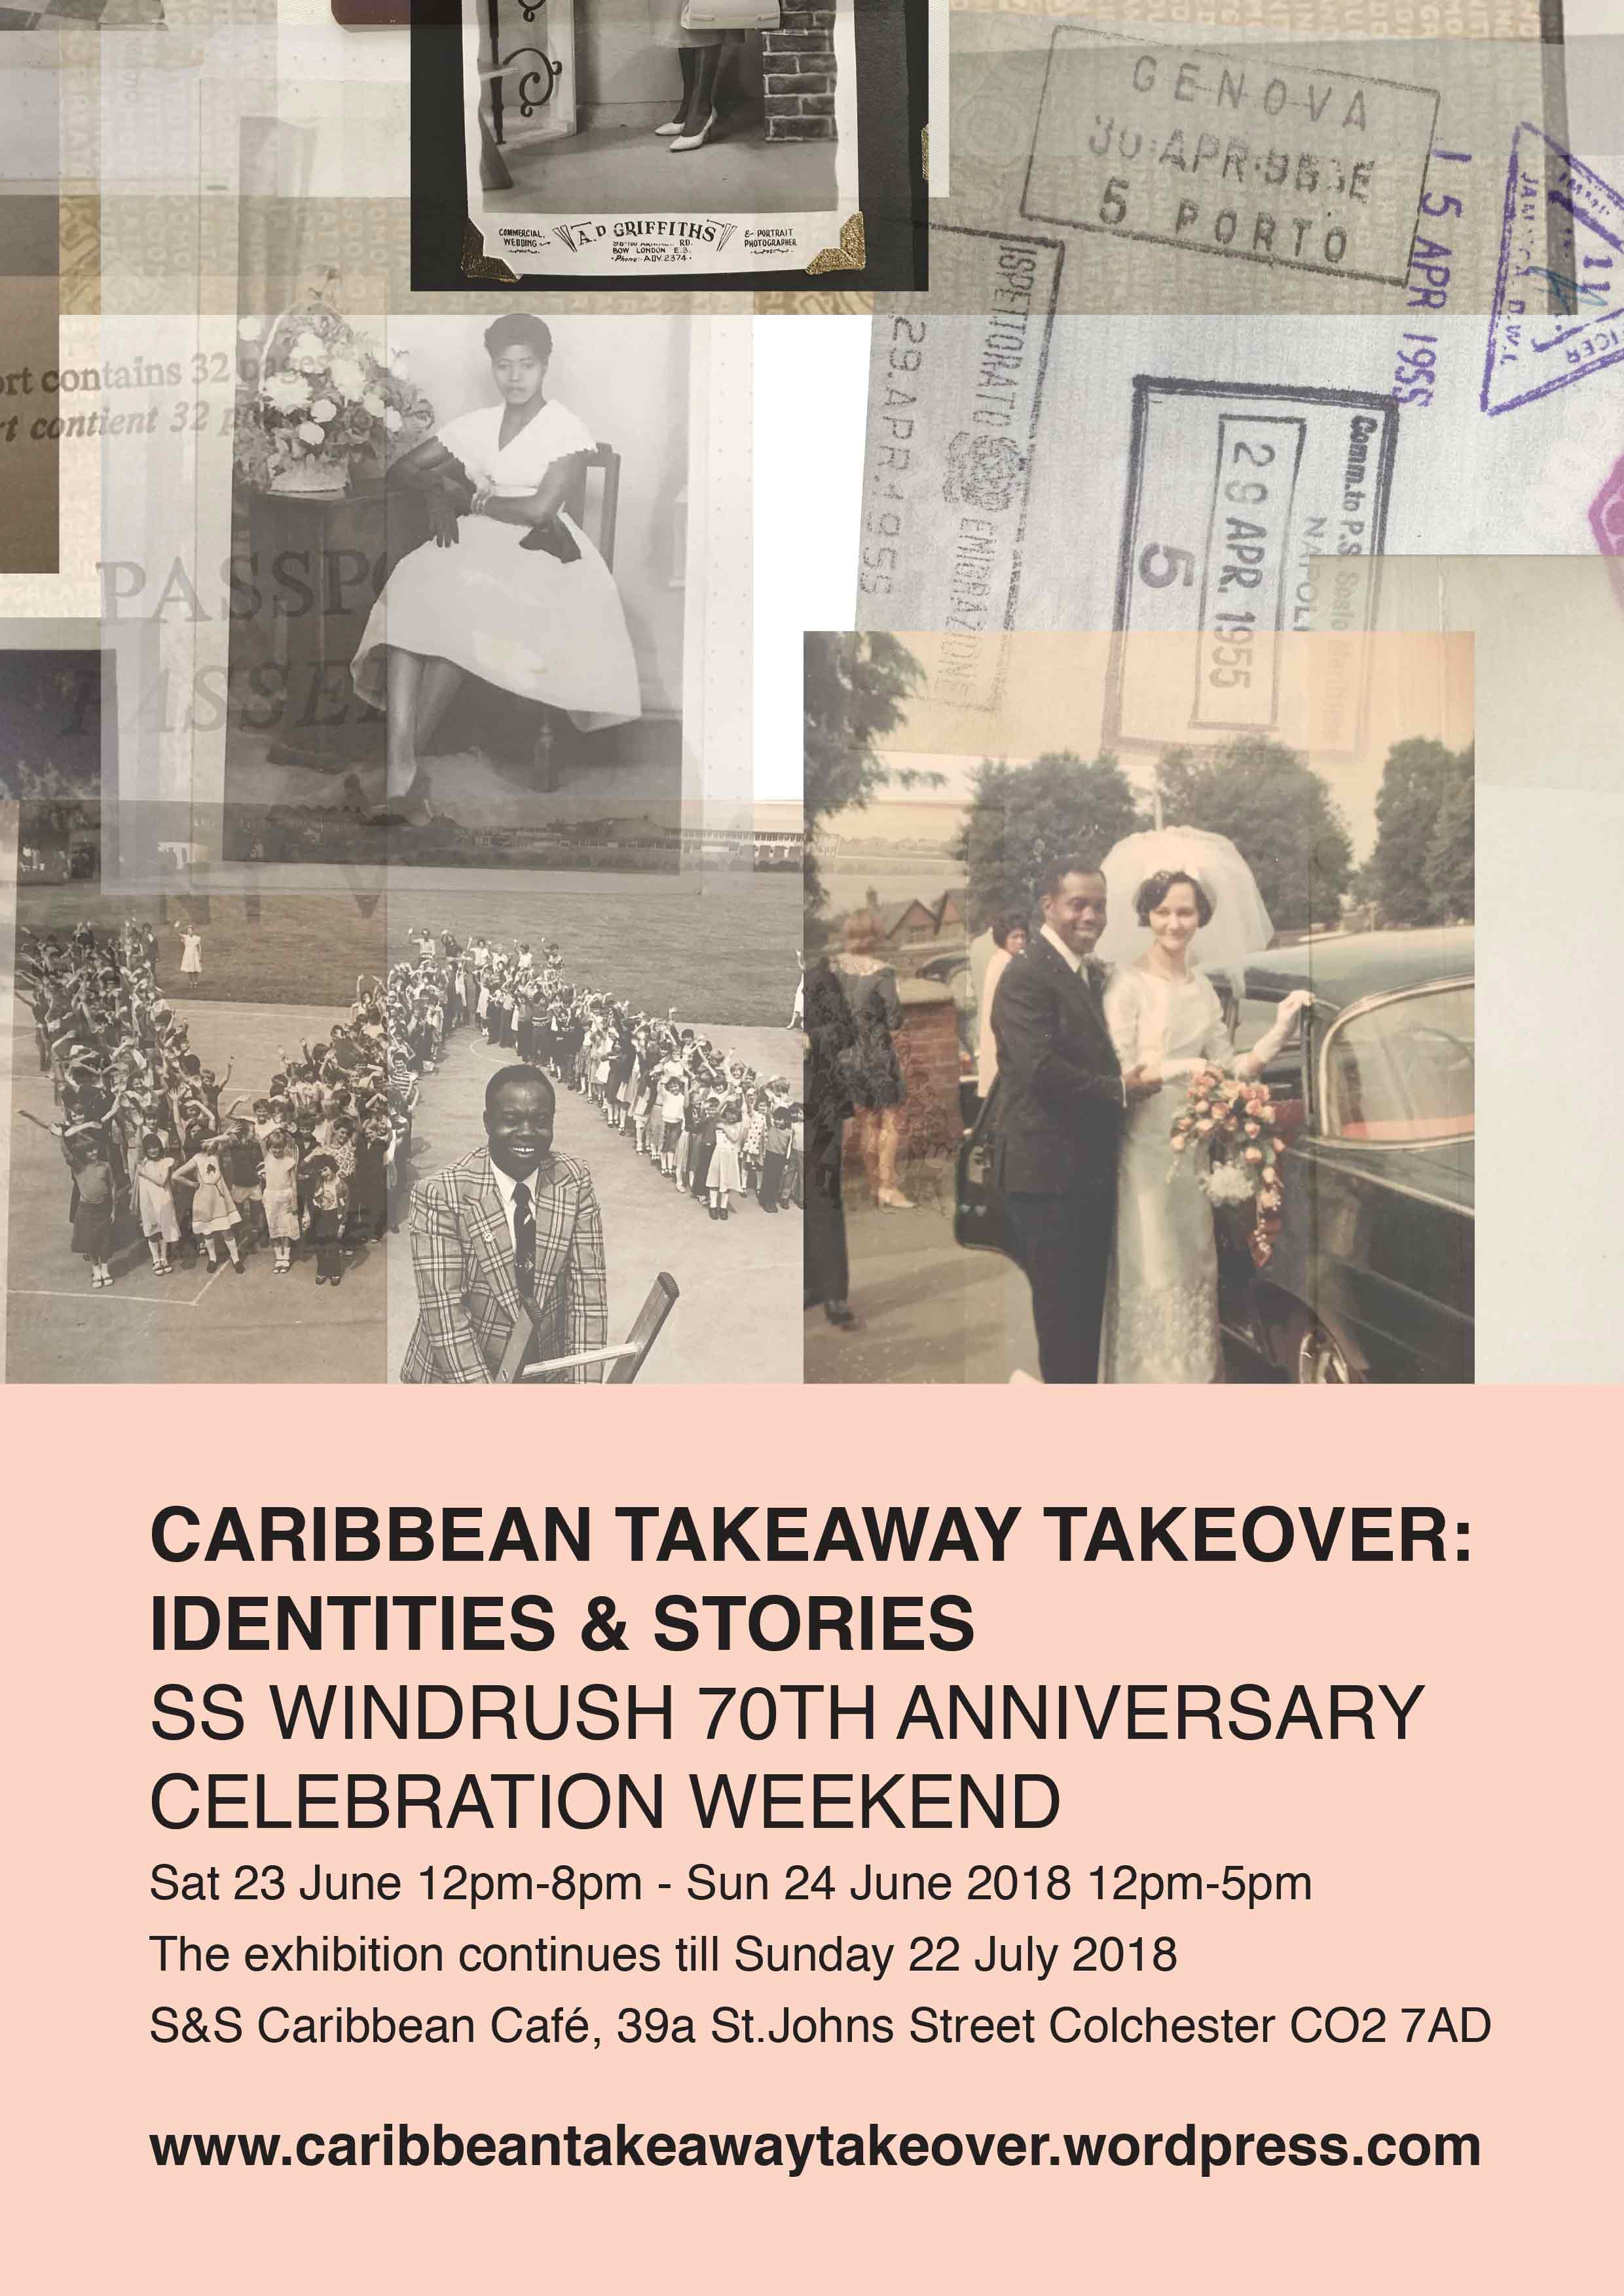 Caribbean Takeaway Takeover Poster design 03 produced by ESP